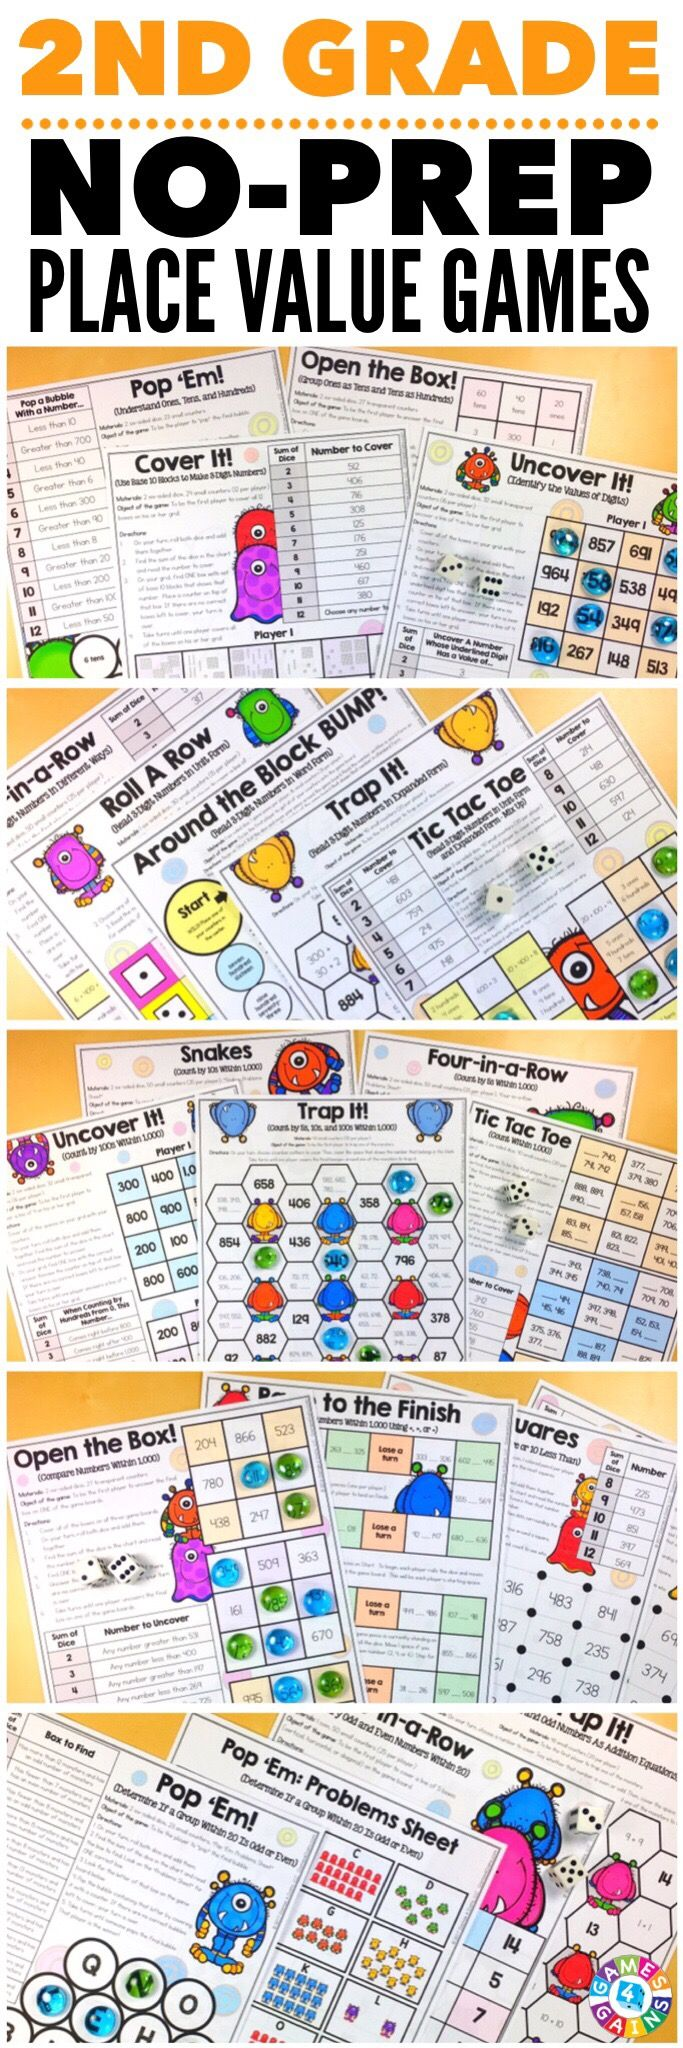 """Kids are LOVING these games during rotation time to reinforce standards."" This 2nd Grade Place Value Games Pack includes 21 differentiated games for practicing reading 3-digit numbers in different forms, counting within 1,000, skip counting by 5s, 10s, and 100s, comparing 3-digit numbers, identifying even and odd numbers, and much more! These games support the 2nd grade CCSS place value standards {2.NBT.1, 2.NBT.2, 2.NBT.3, 2.NBT.4, 2.NBT.8, 2.OA.3}."